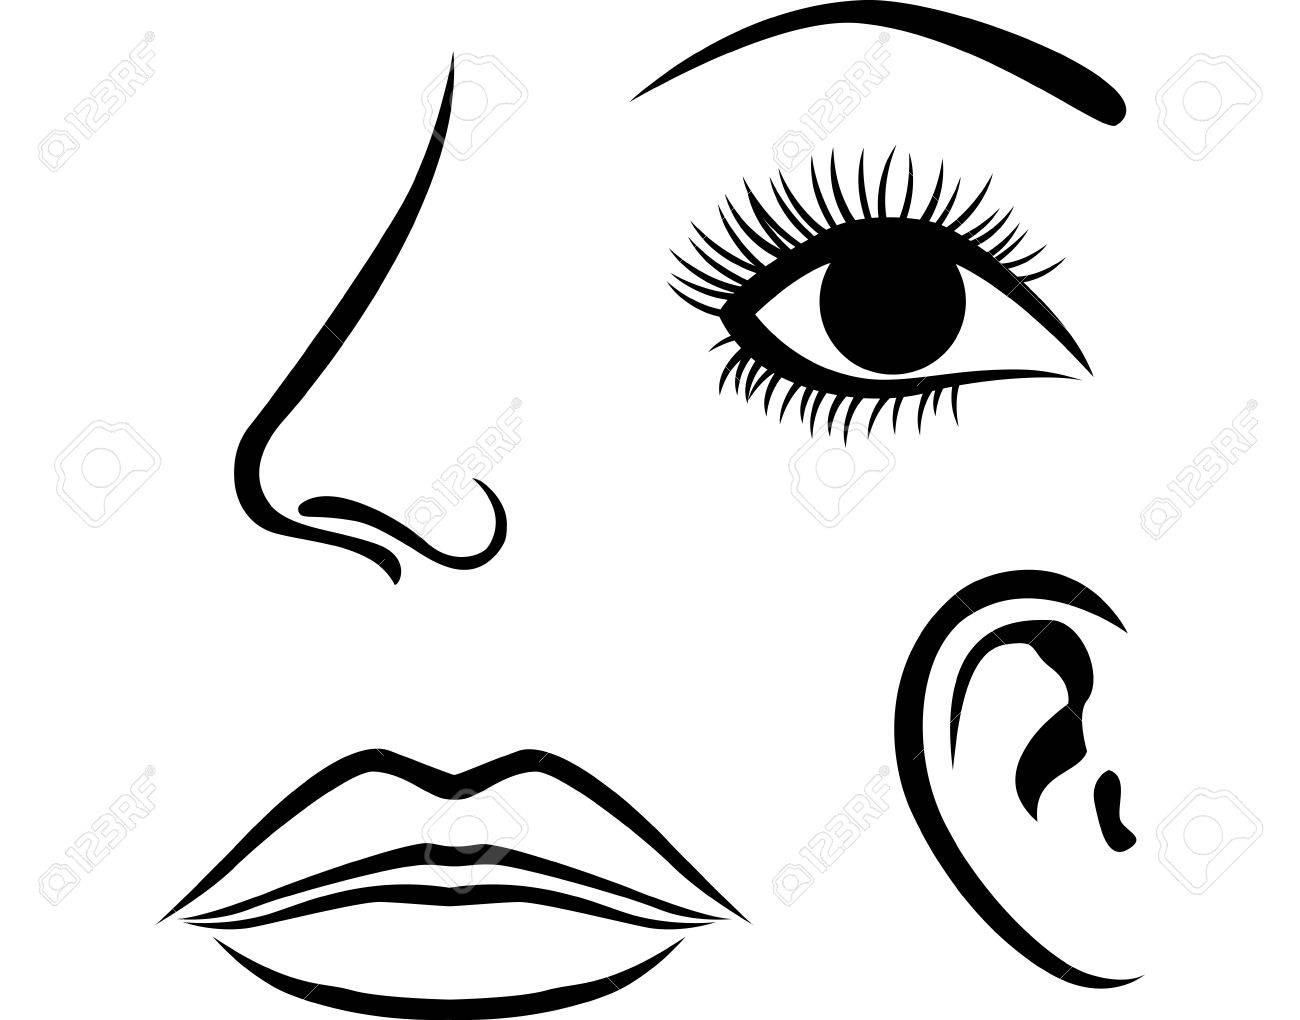 Eyes, nose, lips and ear icon.